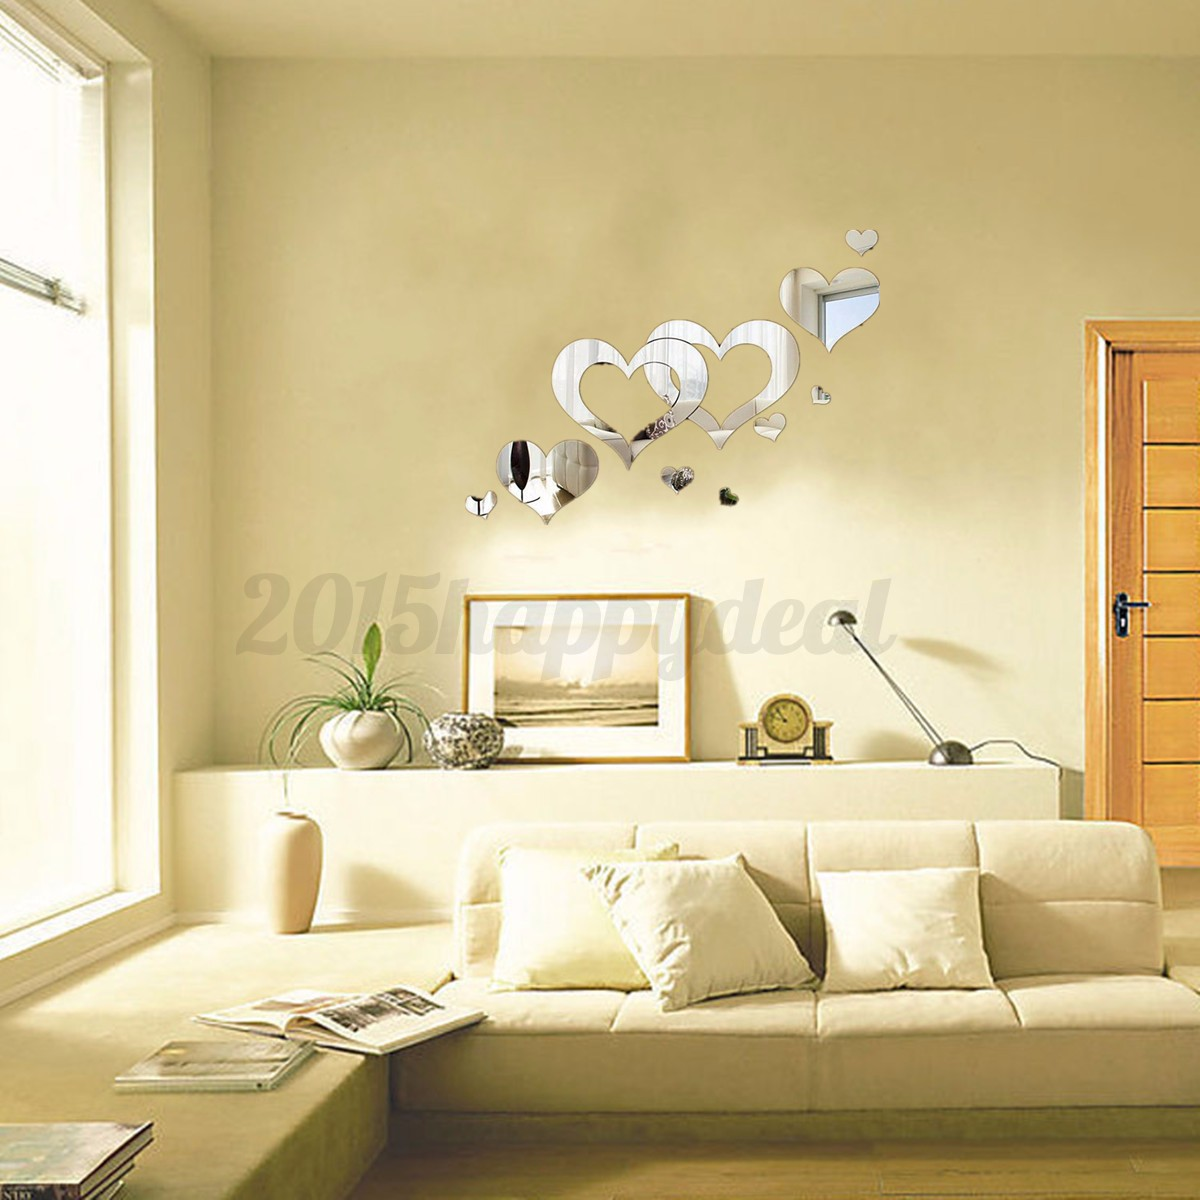 Beautiful Sun Mirror Wall Decor Festooning - Art & Wall Decor ...